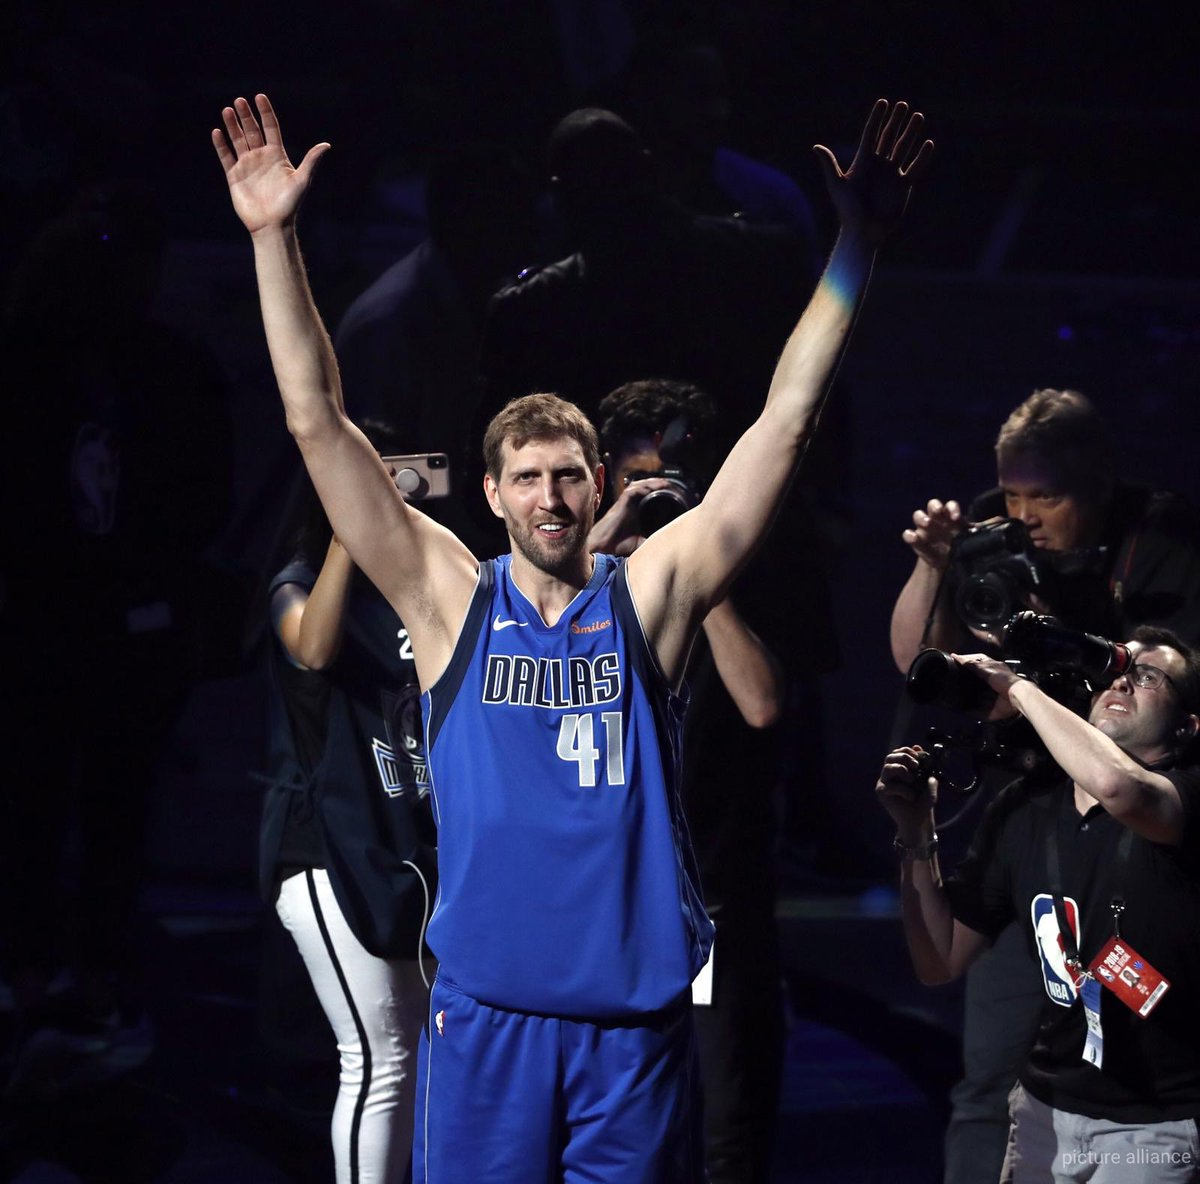 Thank you for everything and endless respect for your huge career big man @swish41 🙌🏽🏀 #Nowitzki #Basketball #NBA